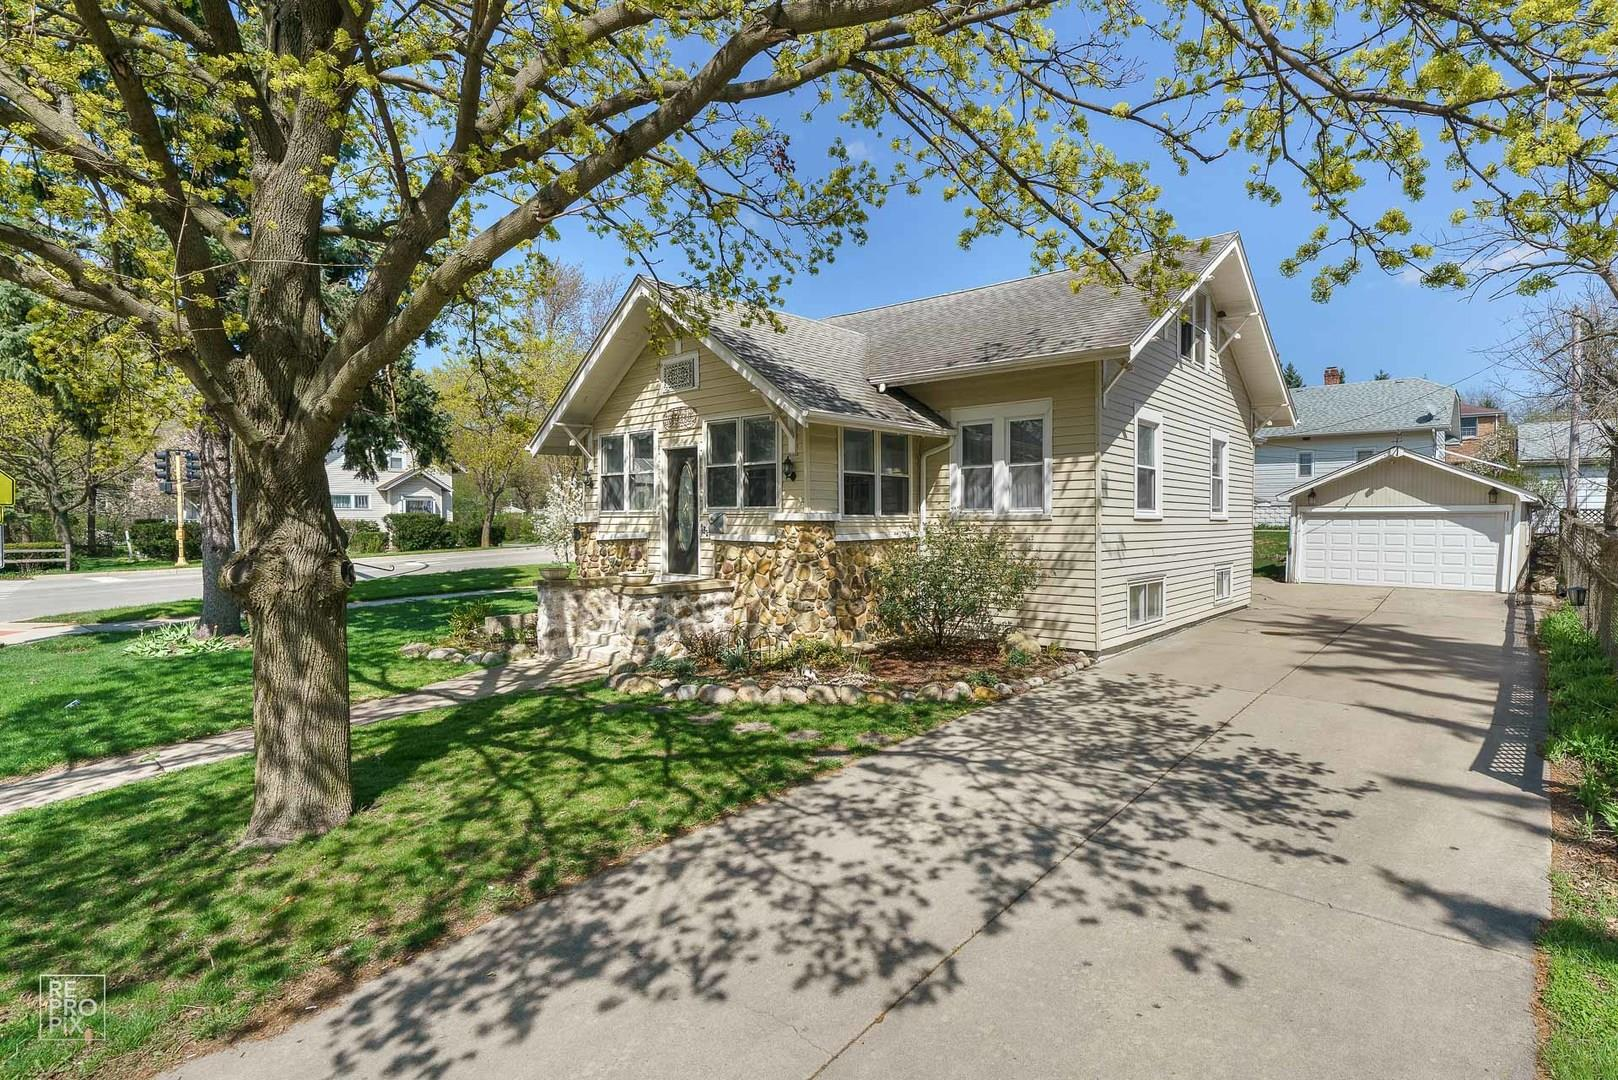 131 S Roselle Road, Roselle, IL 60172 - #: 11053758